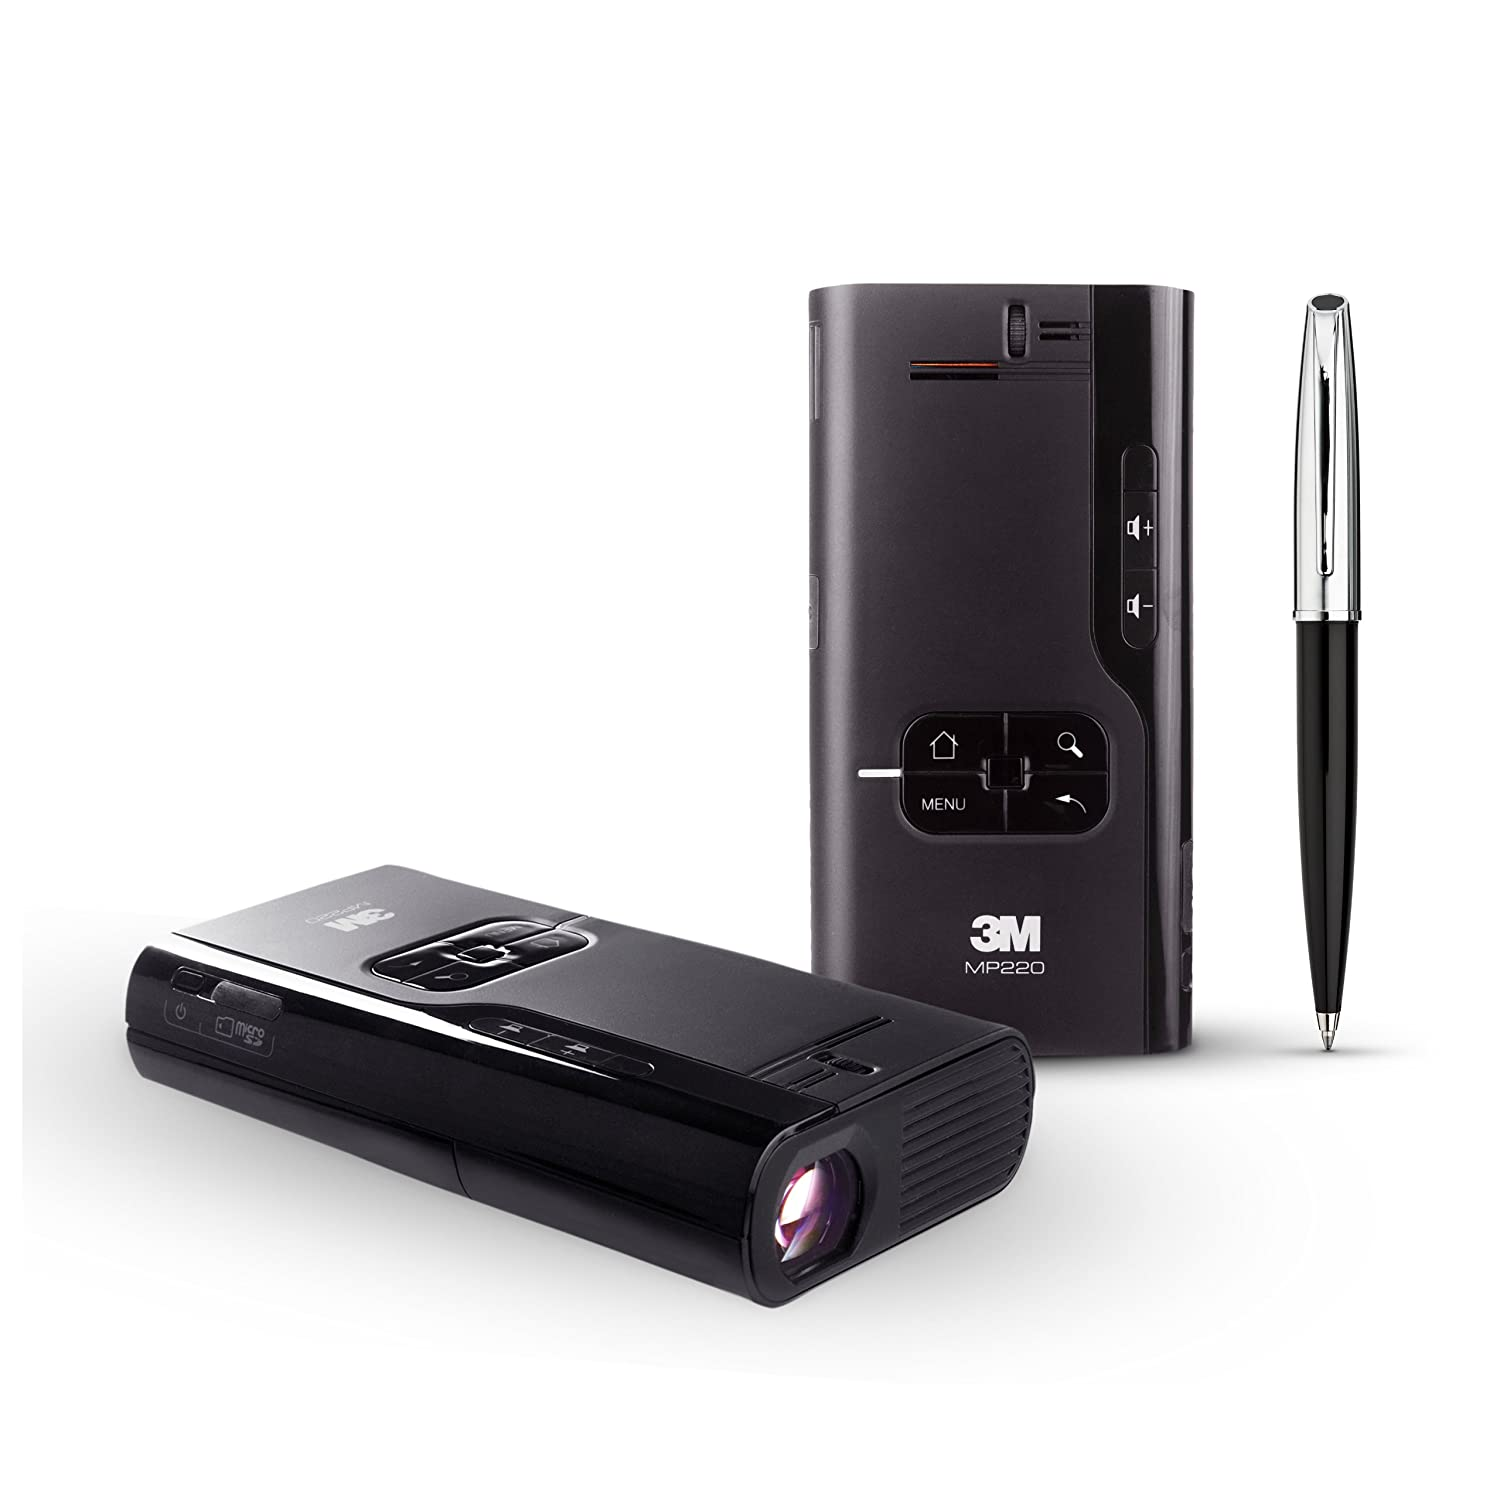 3M Mobile Presentation Projector (65 Lumen, 2 Hour Battery,MP220)